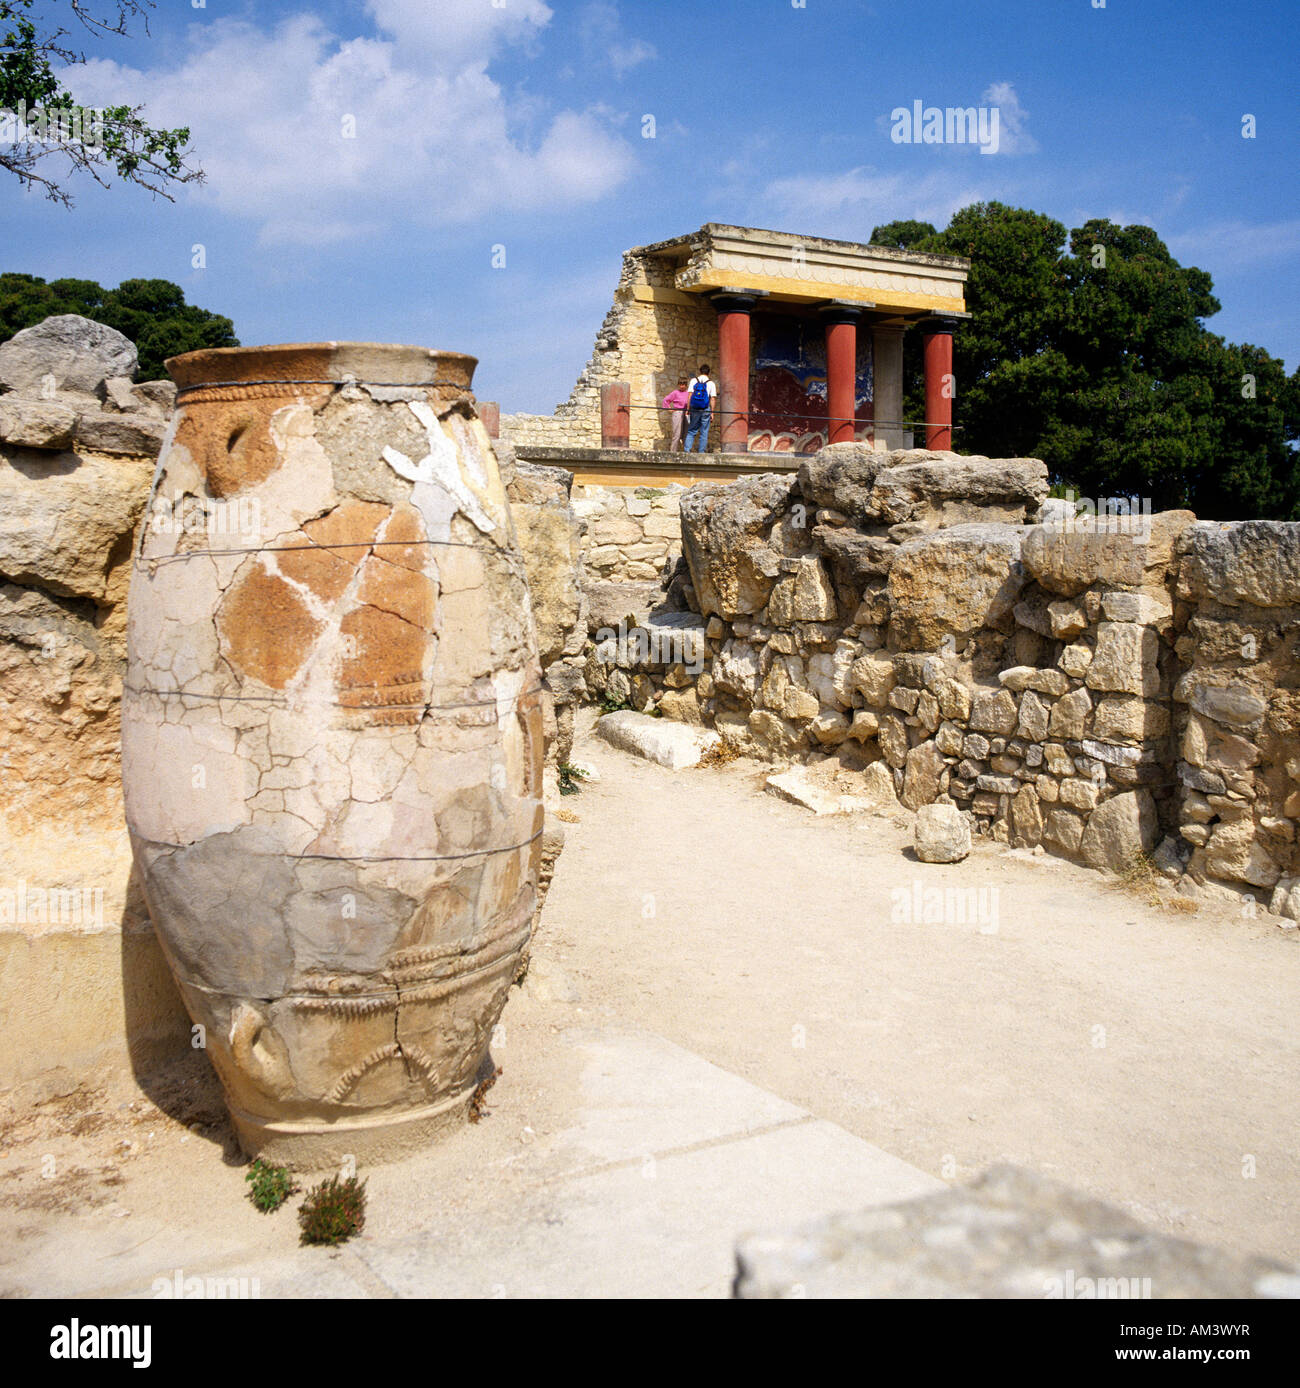 Temple and excavations of Knossos in Crete Greece - Stock Image